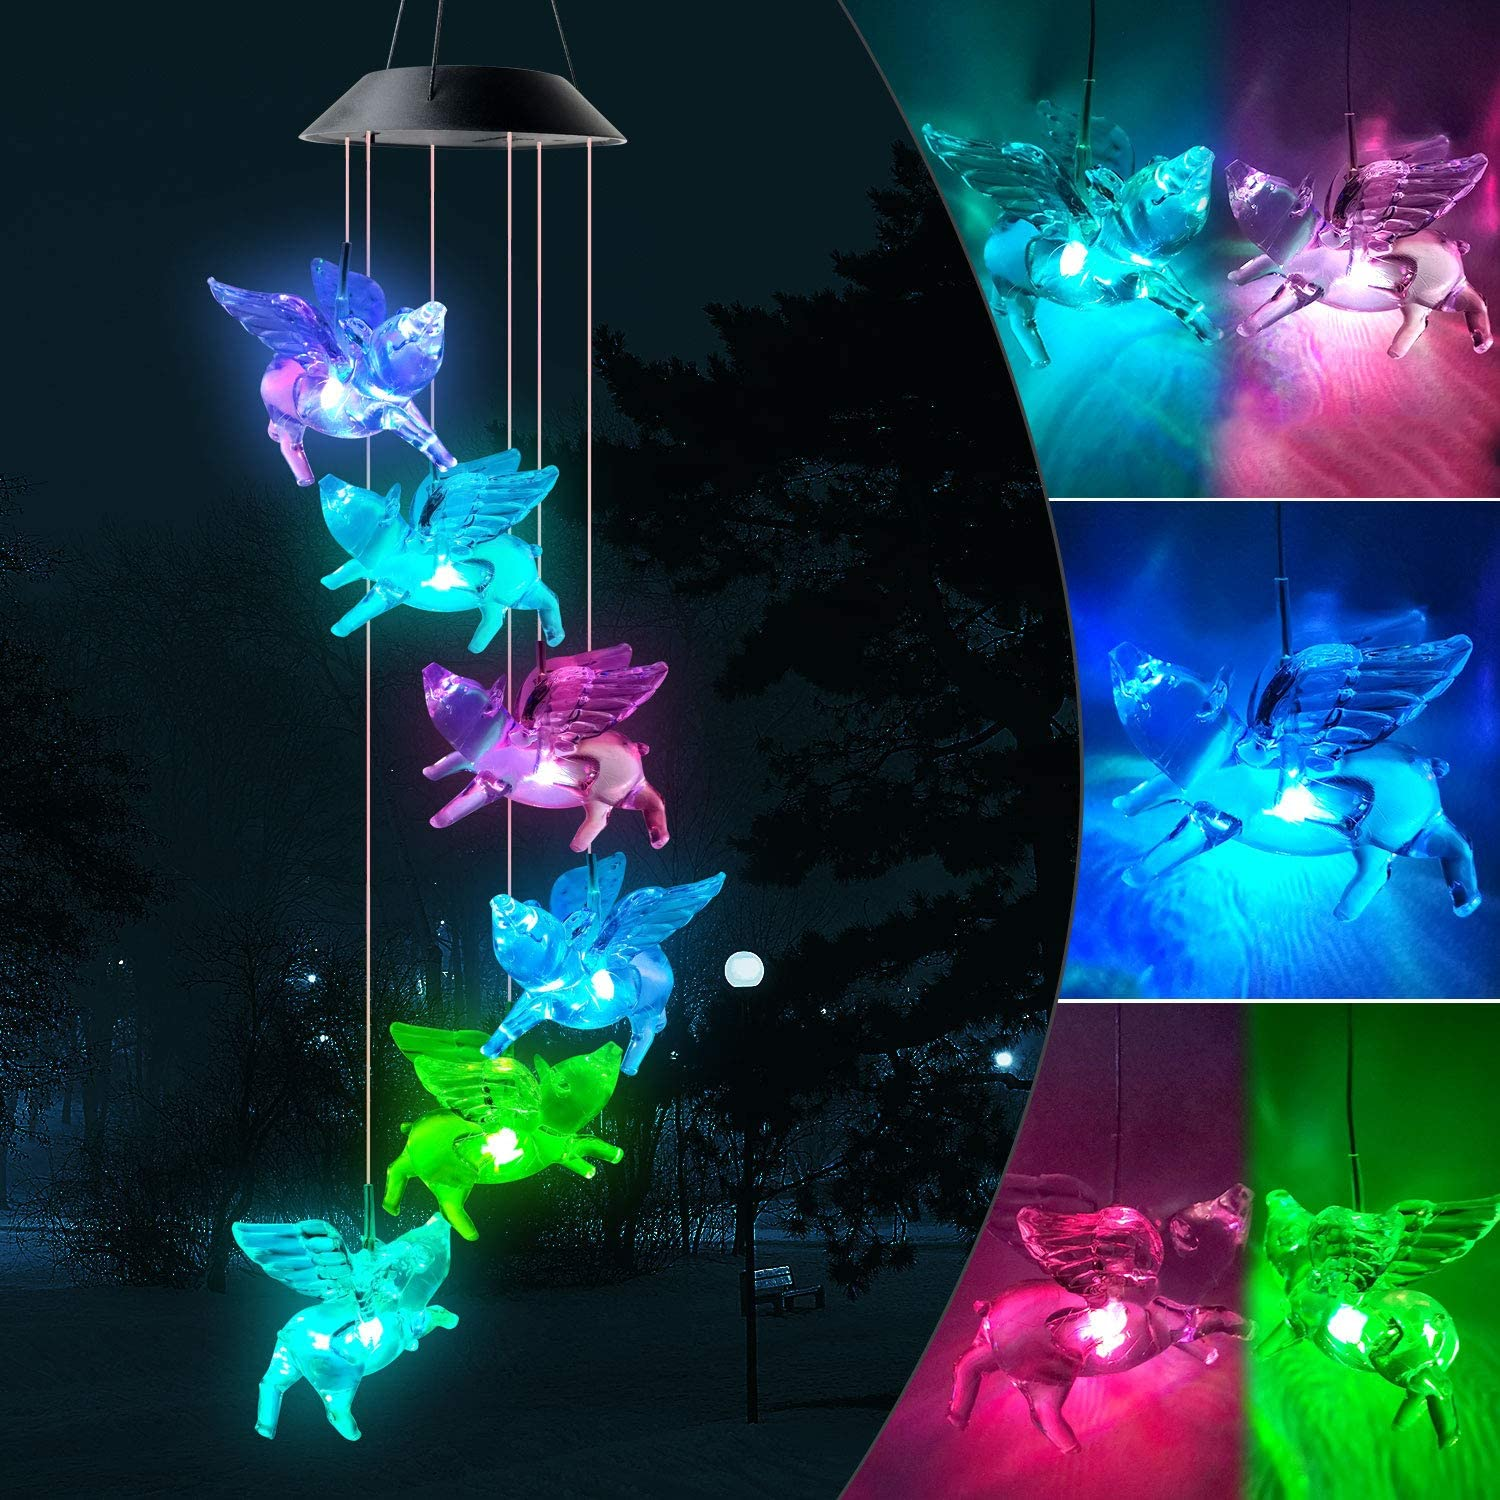 JOBOSI Pig Wind Chimes Gifts for Kids Garden Decor Garden Gifts Solar Wind Chimes Solar Lights Outdoor Decorative Color-Changing LED Light Solar Powered Mobile Hanging Chimes